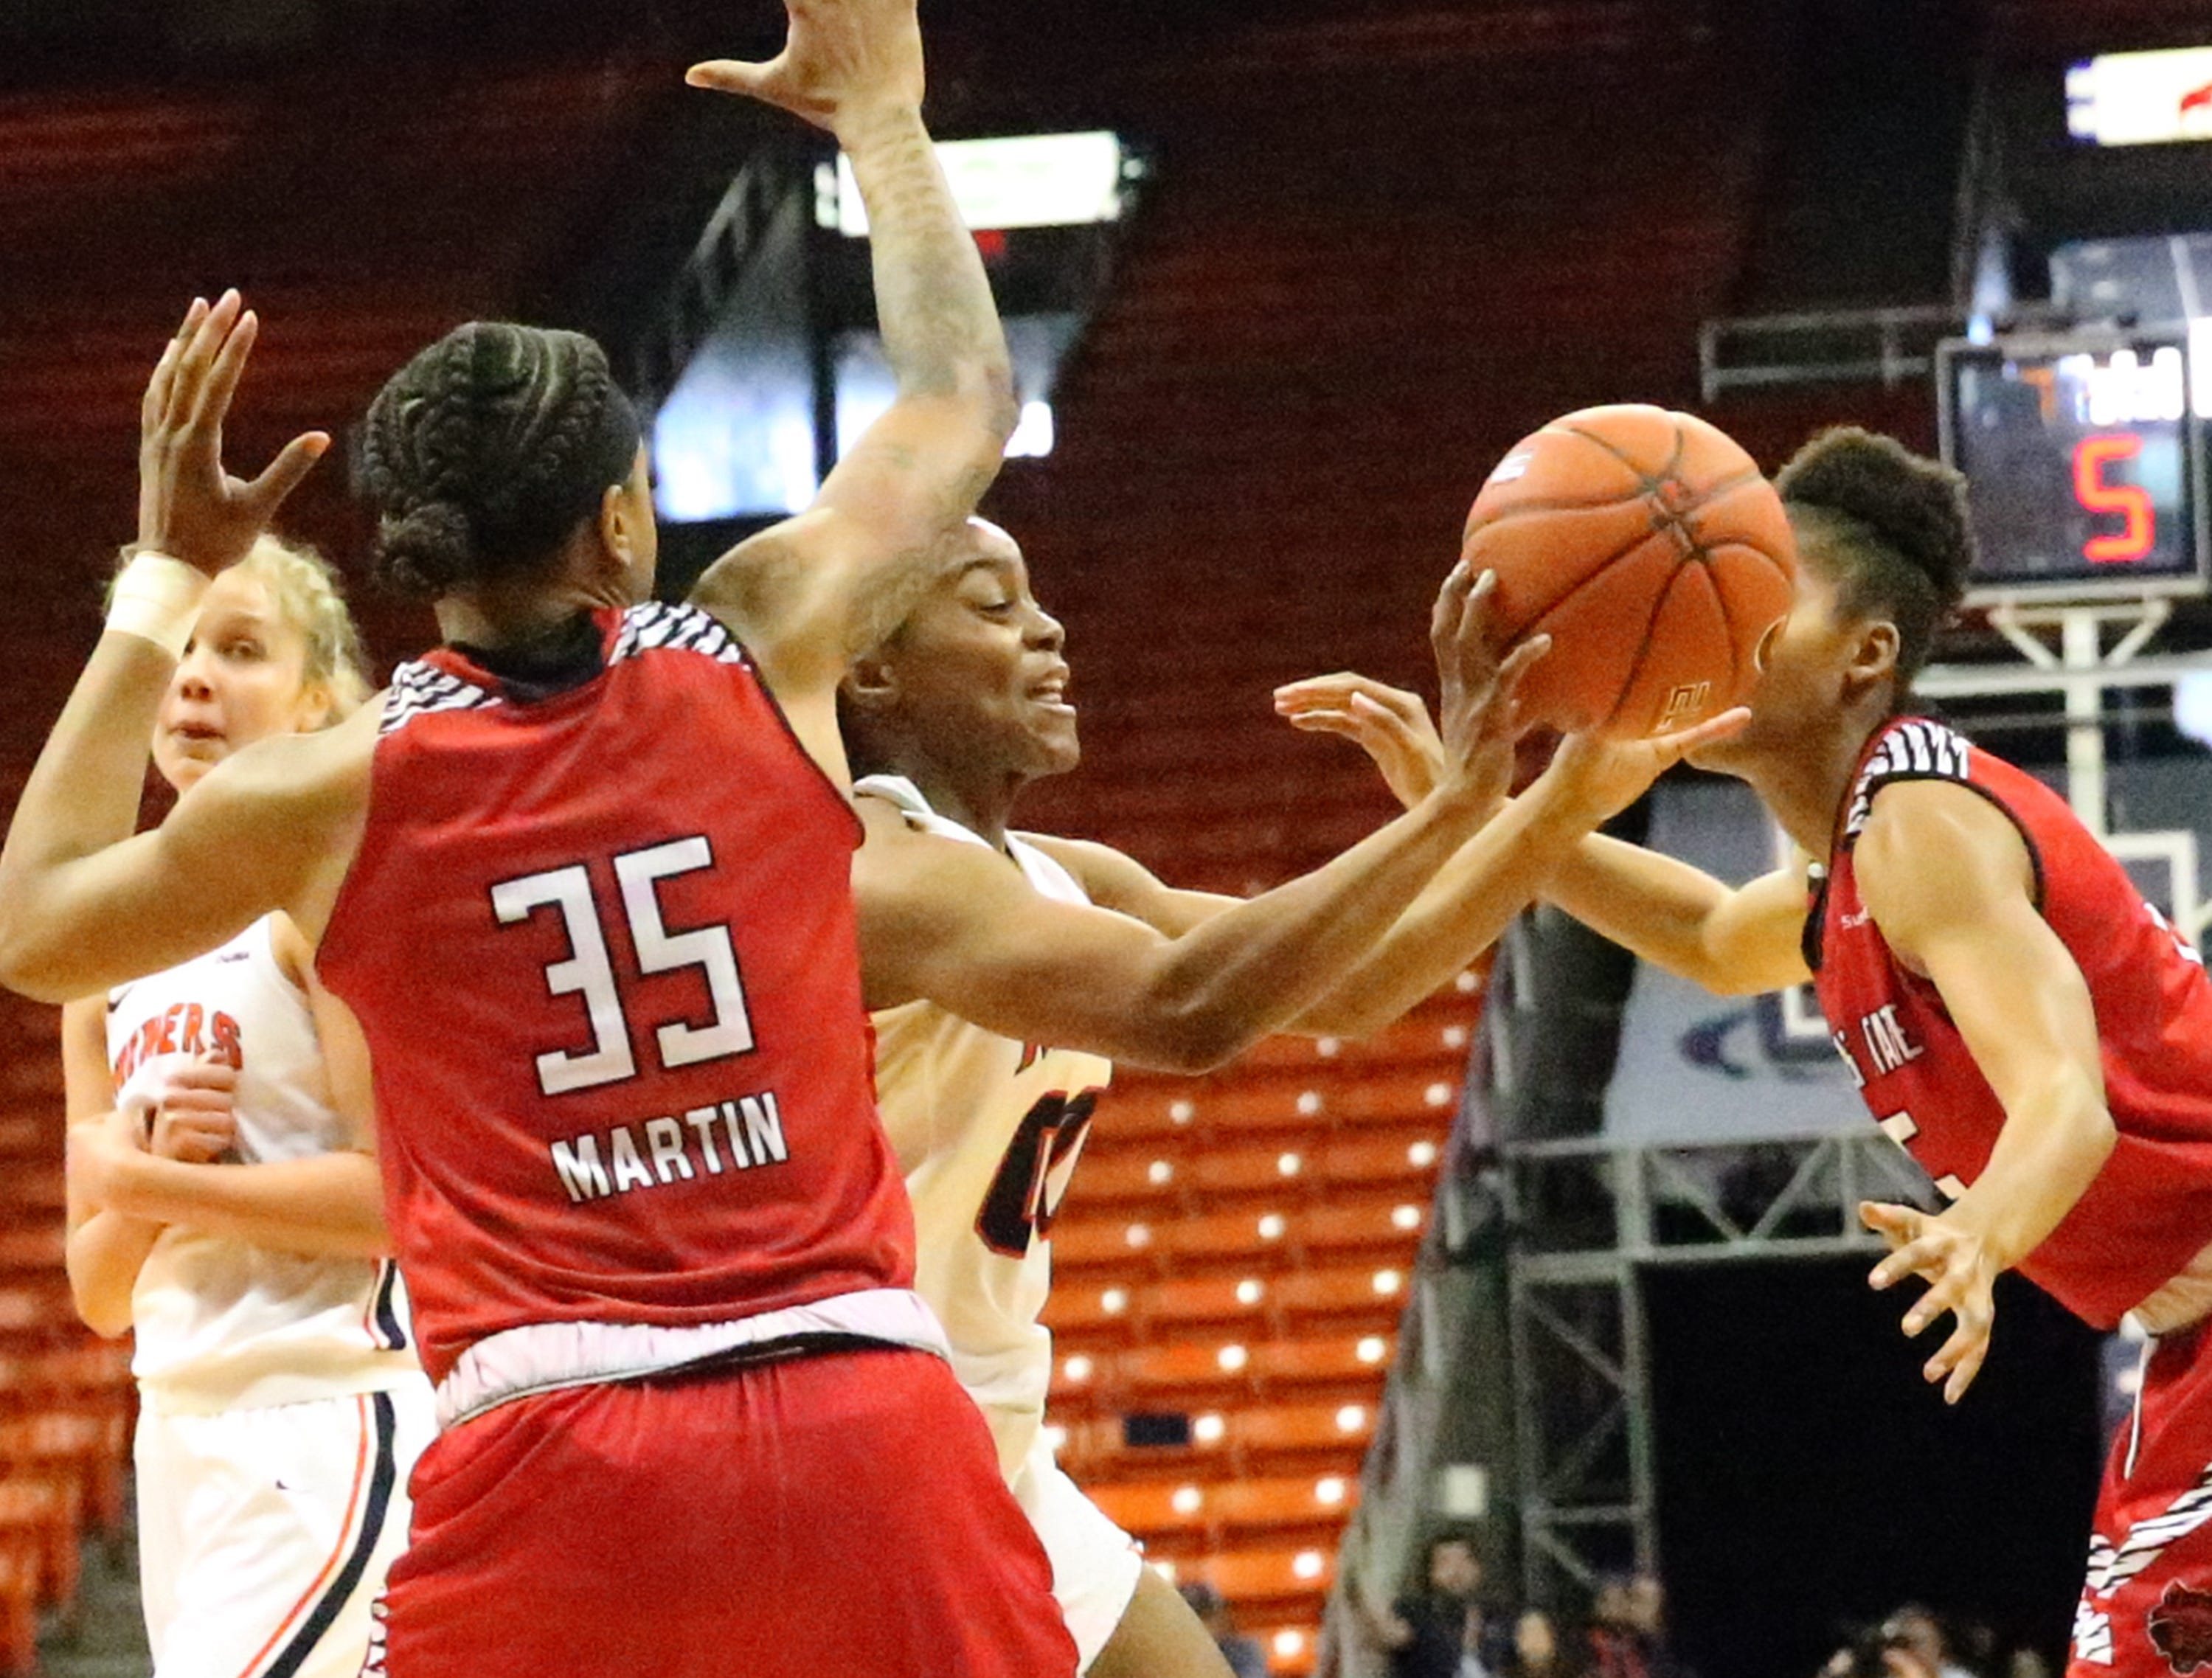 Jordan Jenkins, center, of UTEP finds an outlet while driving to the basket against Arkansas State Saturday in the Don Haskins Center.